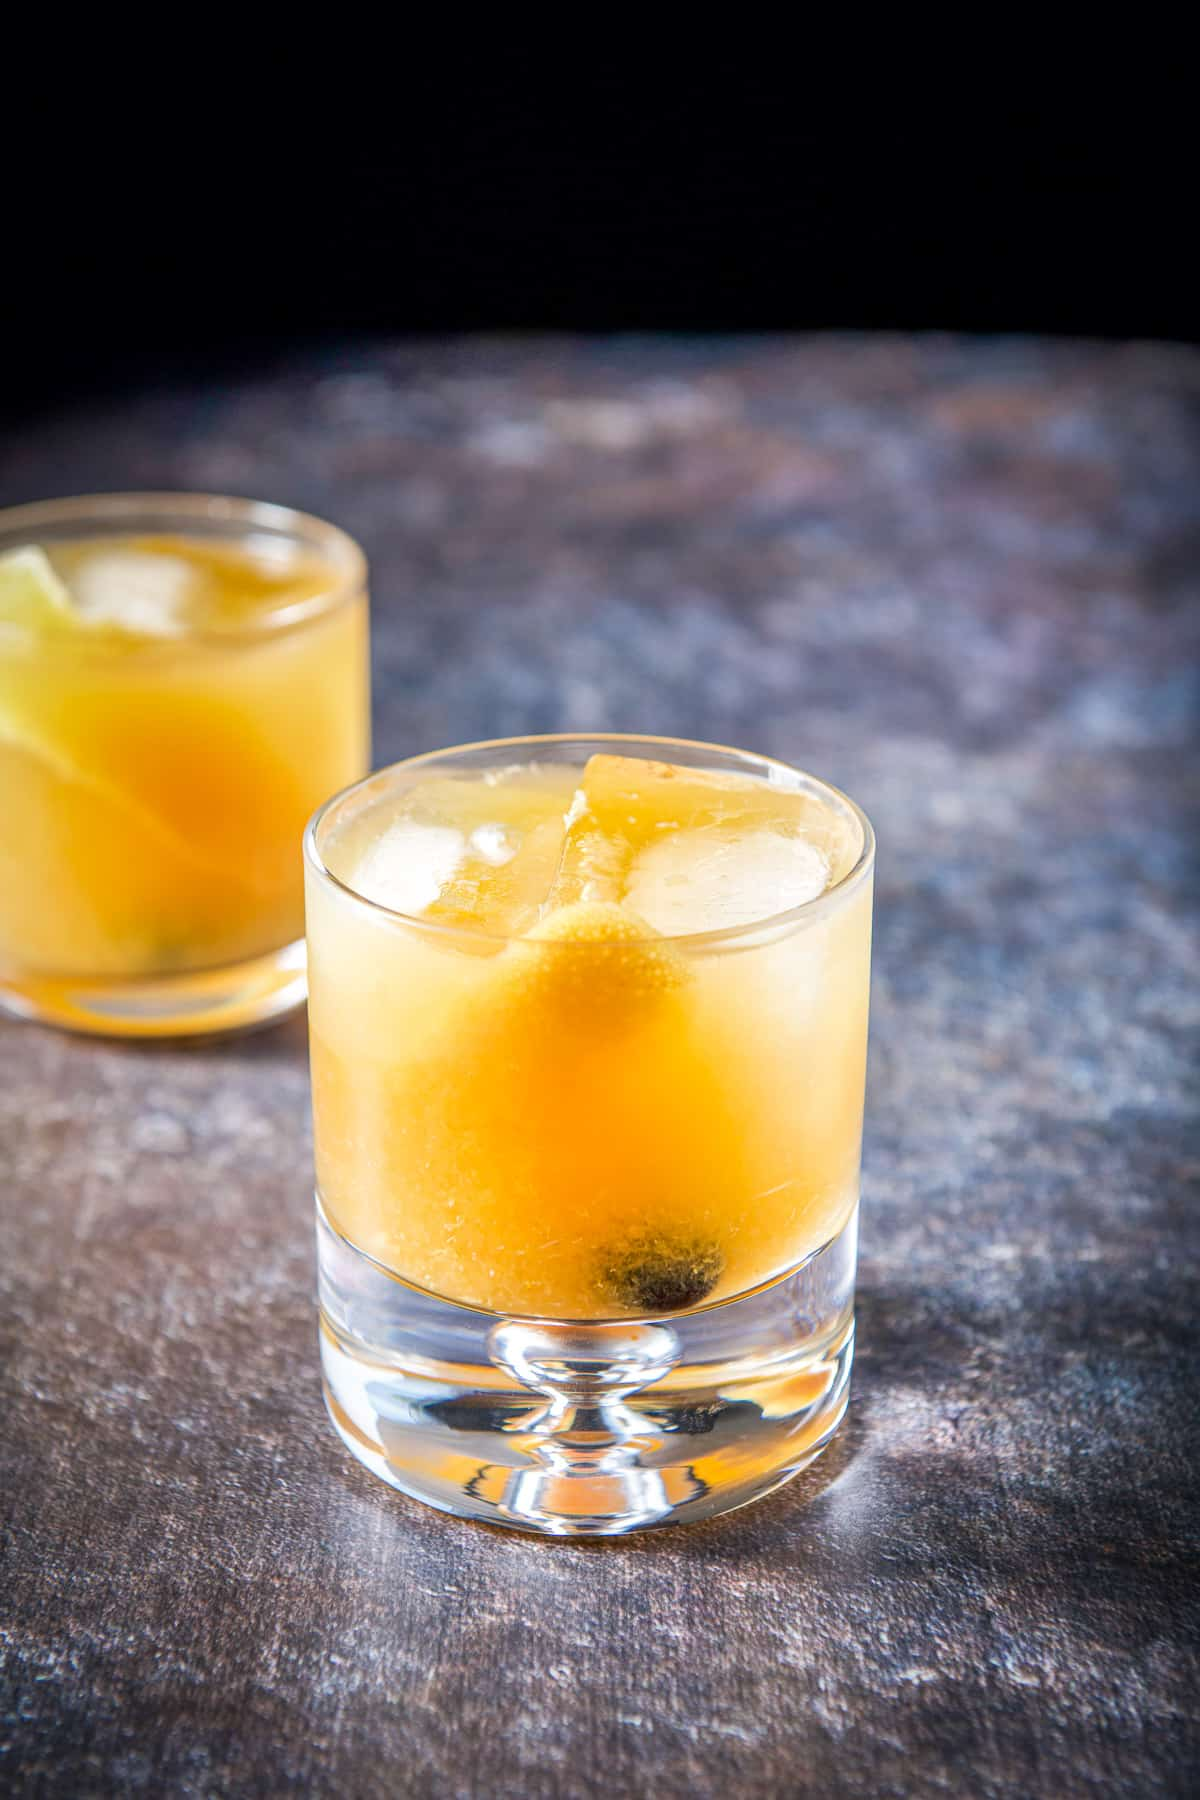 A thick glass in front of a double old fashioned glass filled with the amaretto cocktail